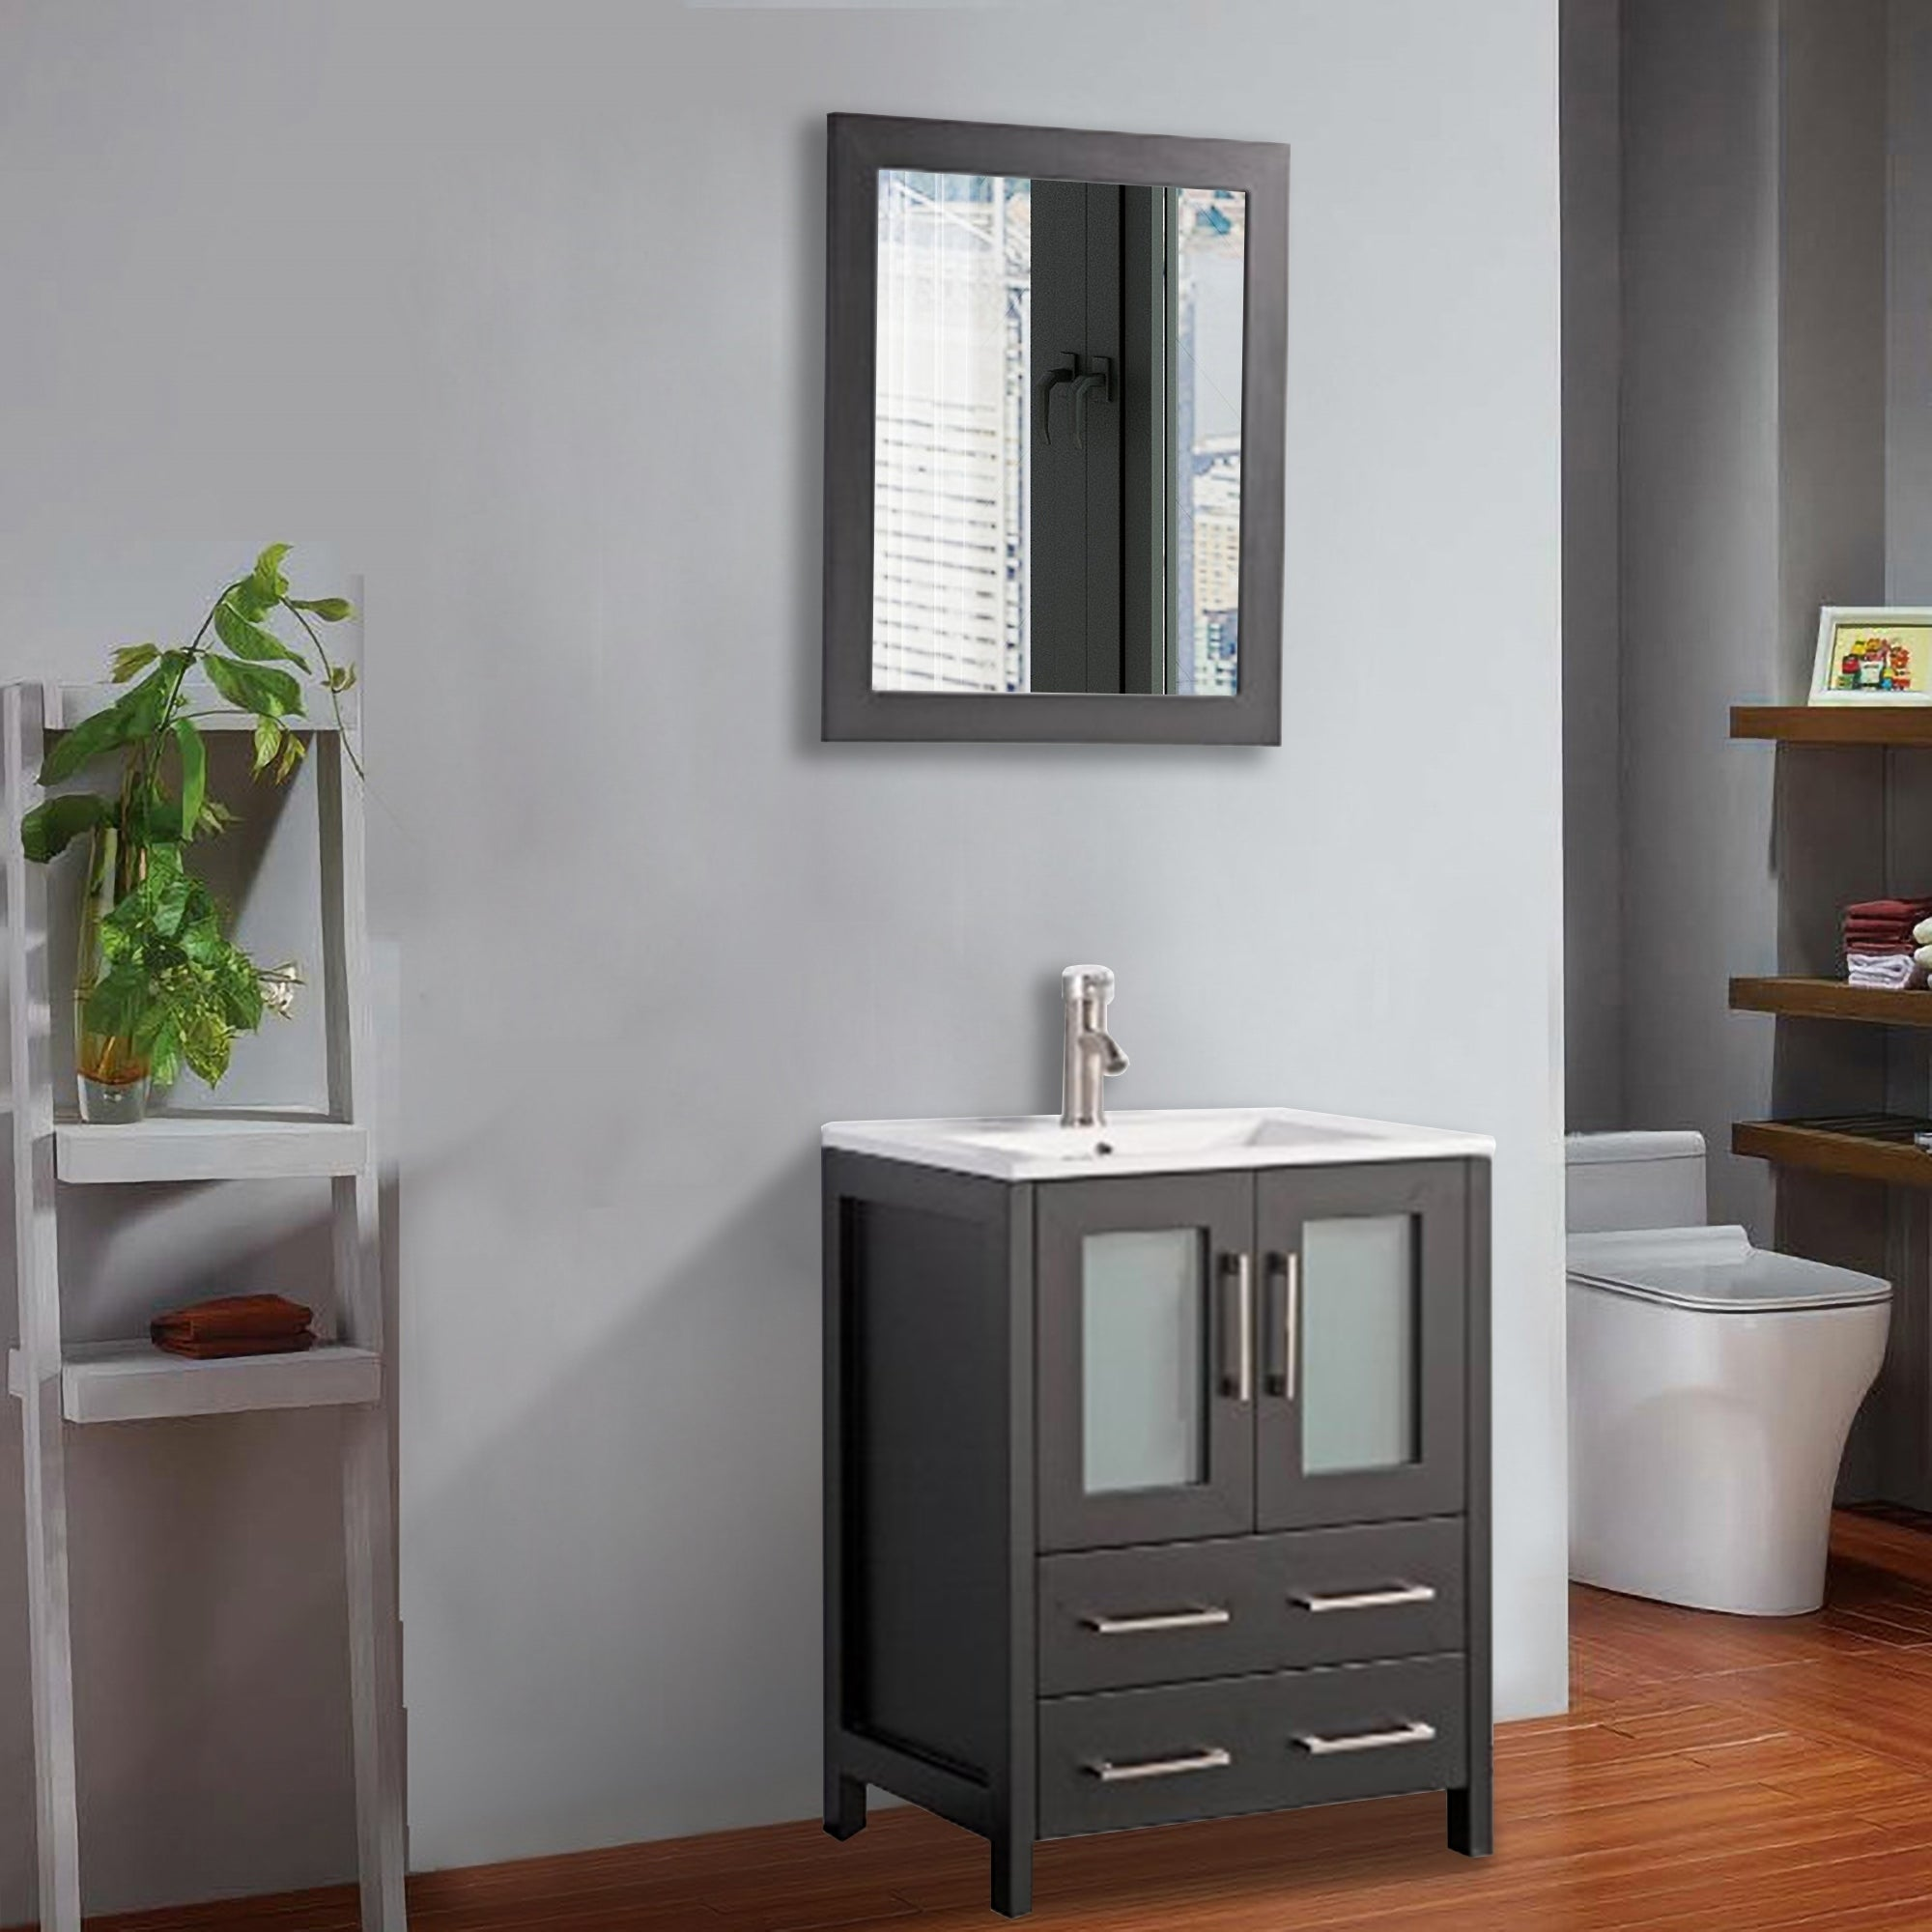 Vanity Art 24 Inch Single Sink Bathroom Vanity Set 2 Drawers 1 Cabinet 1 Shelf Soft Closing Doors With Free Mirror Overstock 12610015